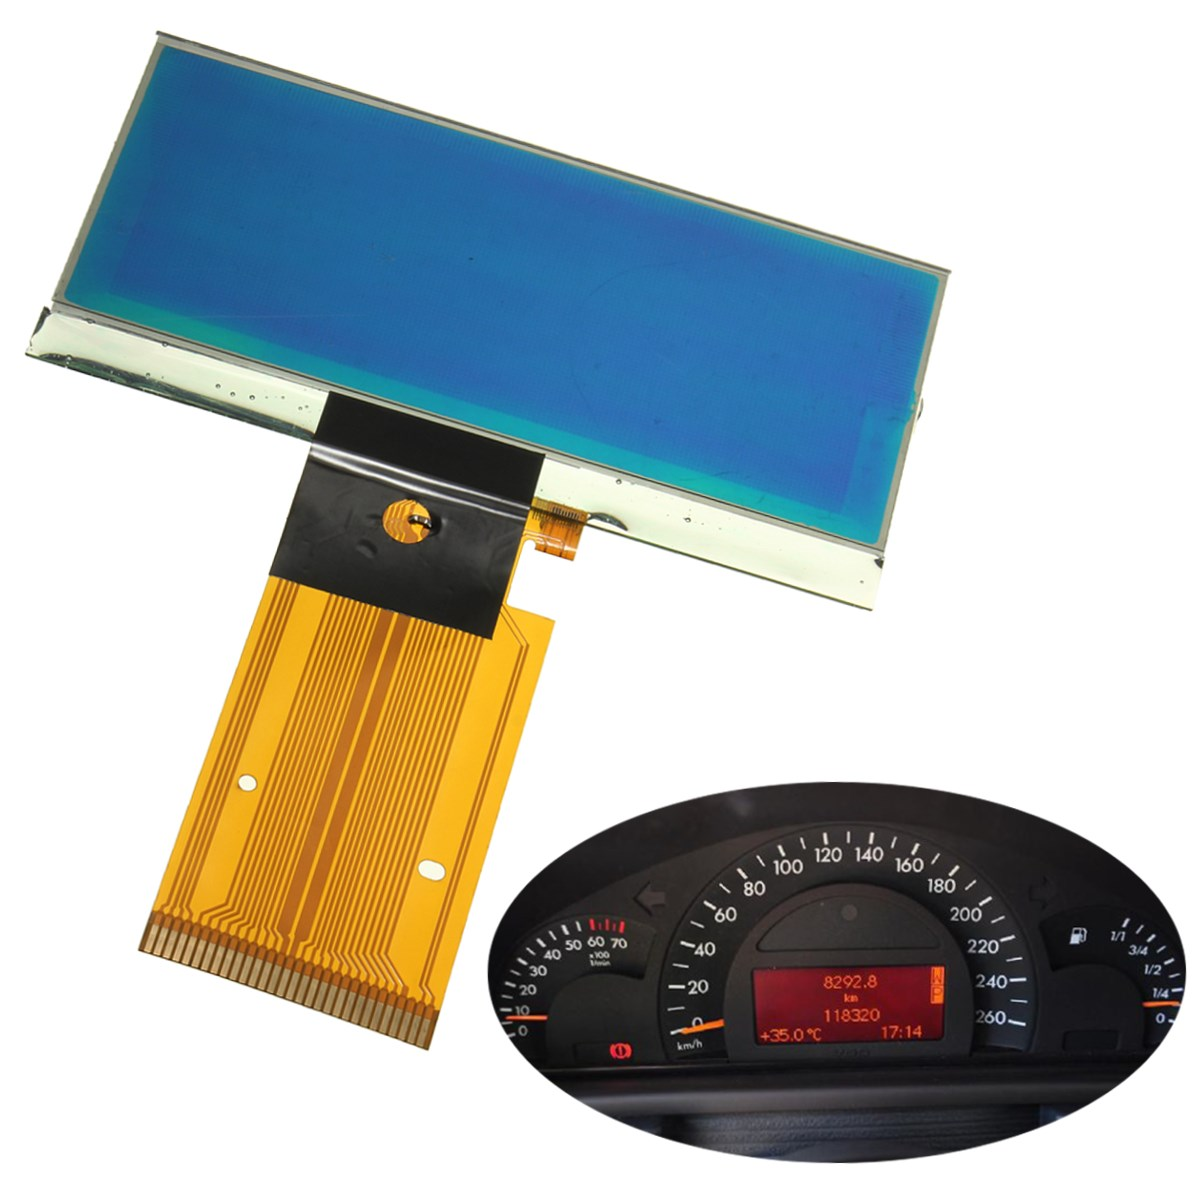 Car Auto LCD Display Screen Speedometer Cluster For Mercedes-Benz C-Class W203 C230 C240 C32 & C55 For AMG 2001 2002 2003 2004 amg mercedes c class dtm 2008 с двигателем г киев